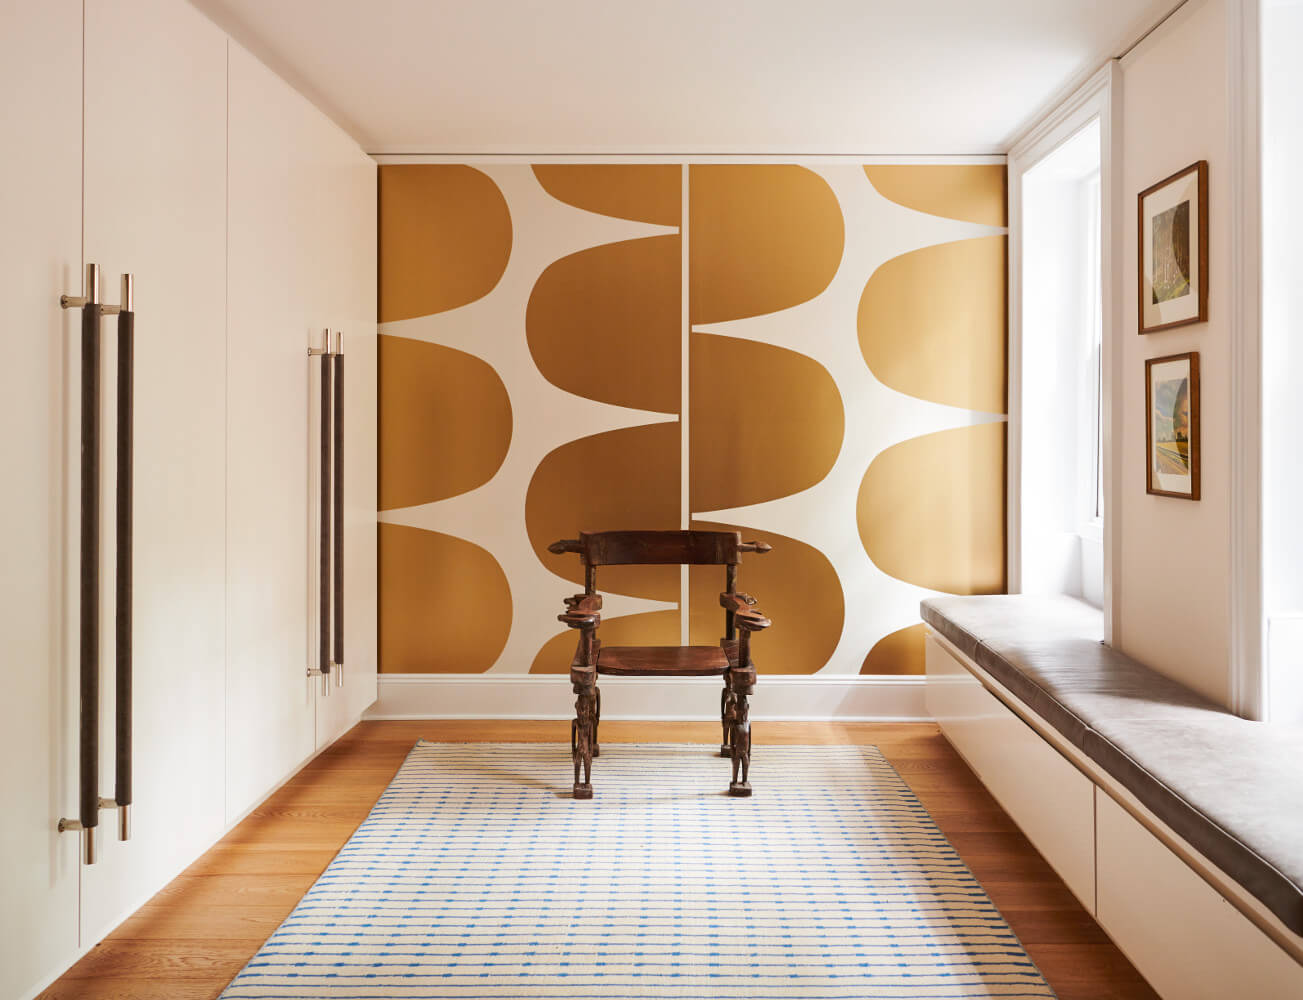 The mudroom combines an over-scaled wallpaper pattern with sleek built-ins.